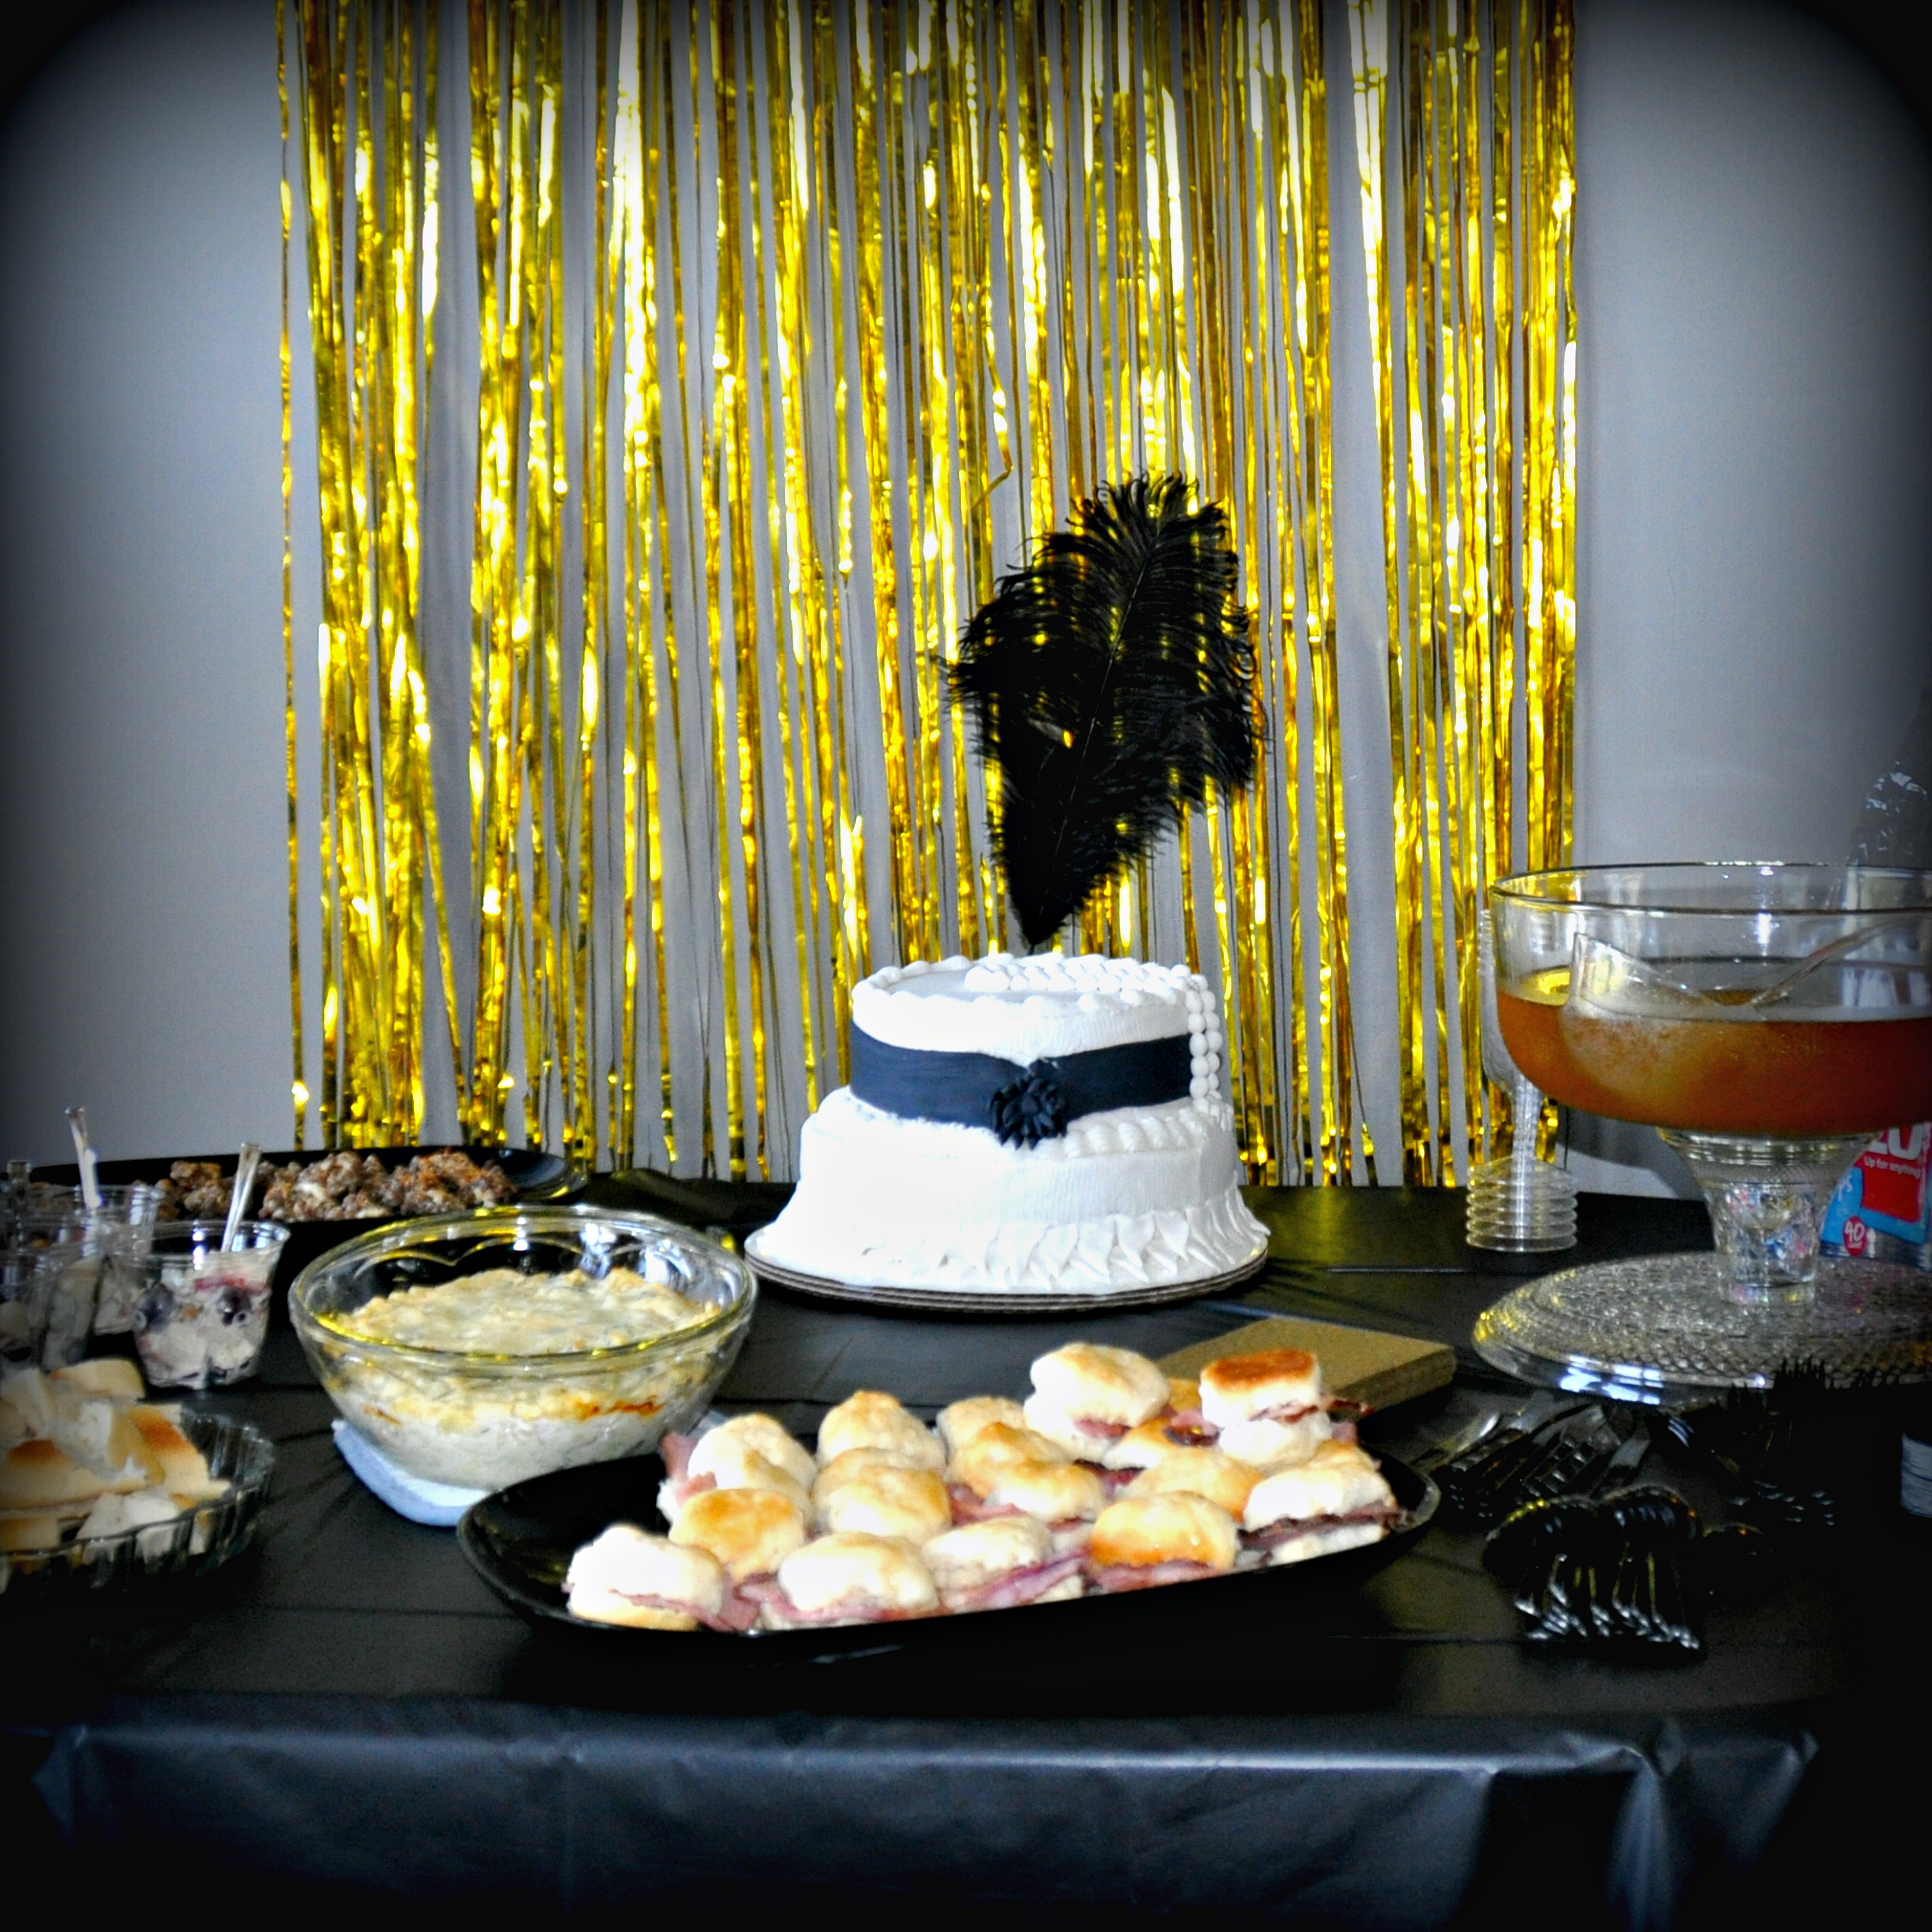 A spread of 1920's food at my sister's Bachelorette party. It was yummy, if I do say so myself!